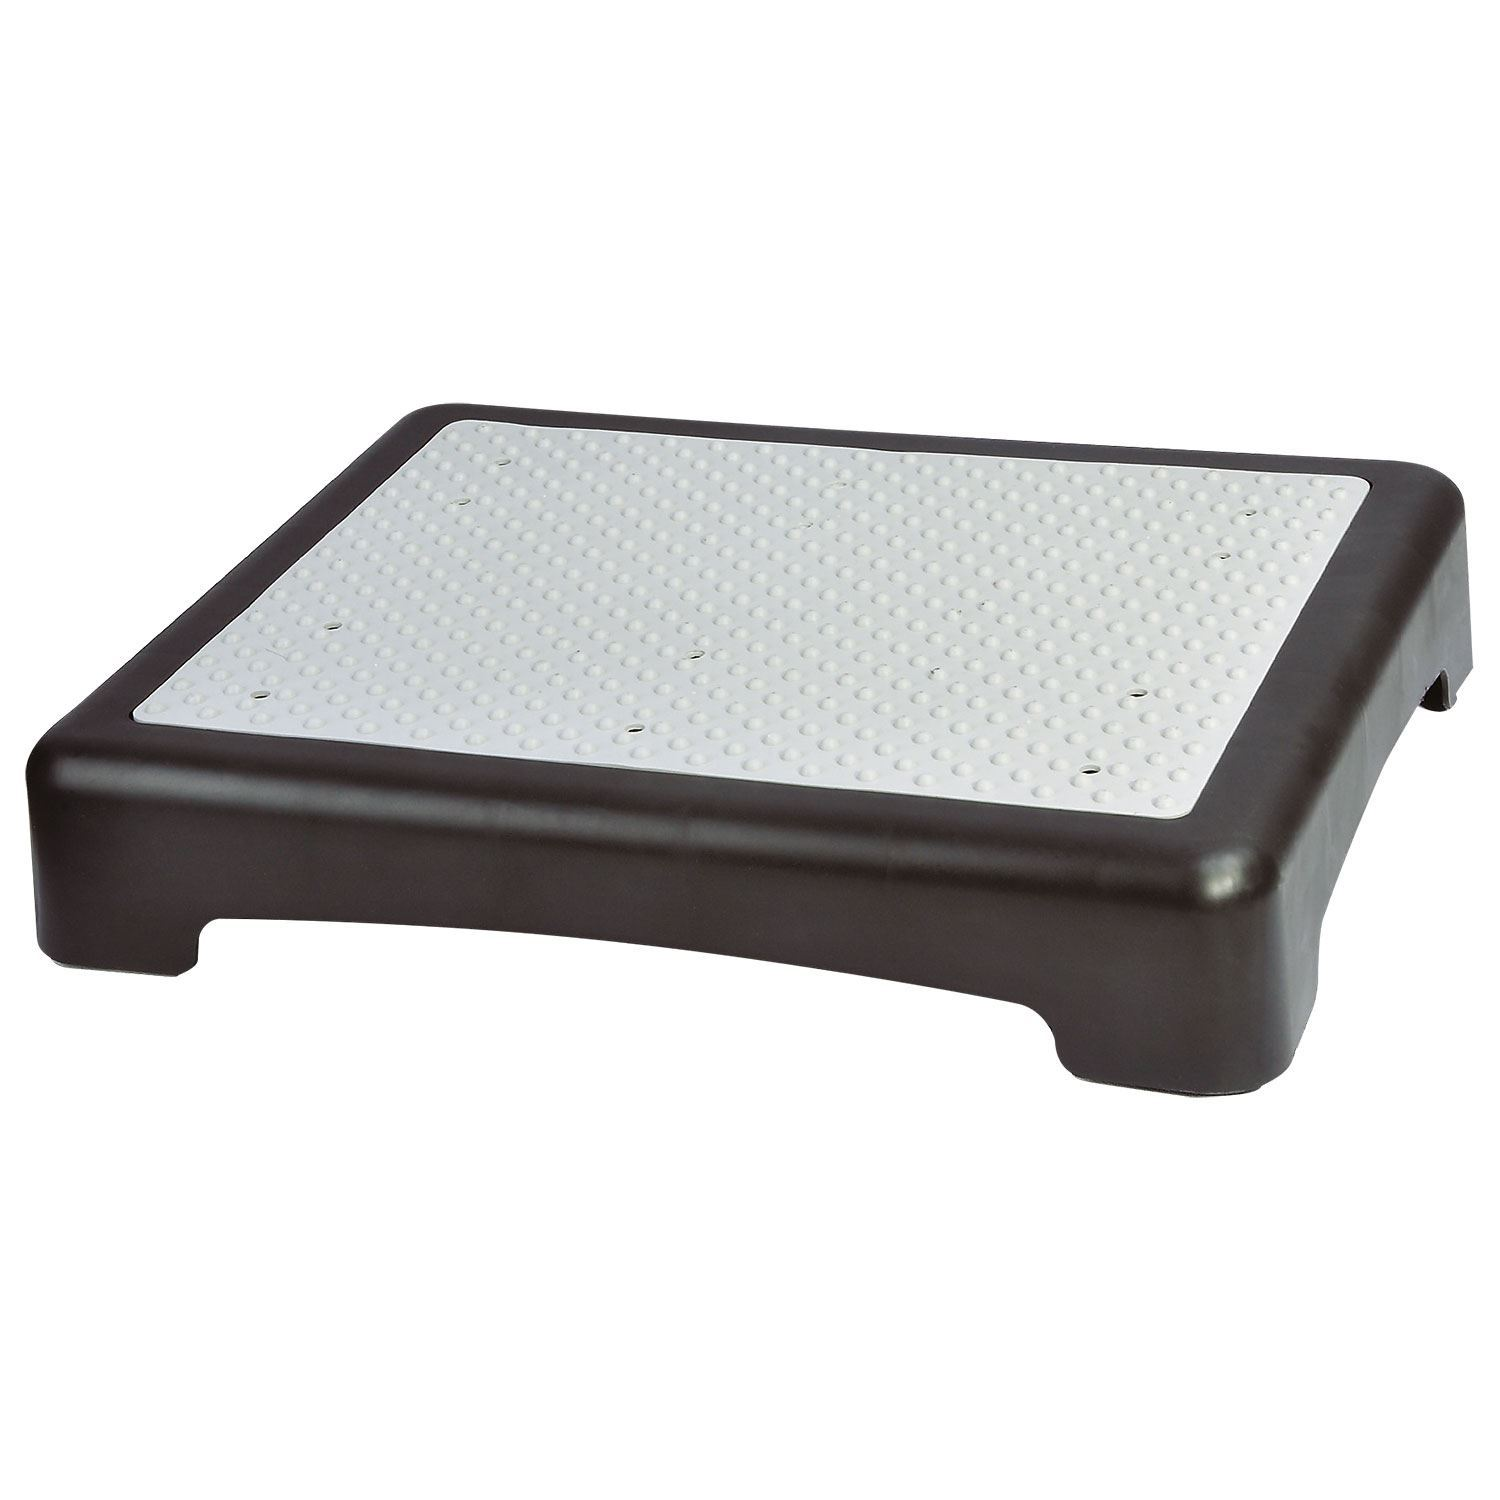 About this item  sc 1 st  eBay & Portable Non slip Half Step Stool Elderly Disability Mobility ... islam-shia.org